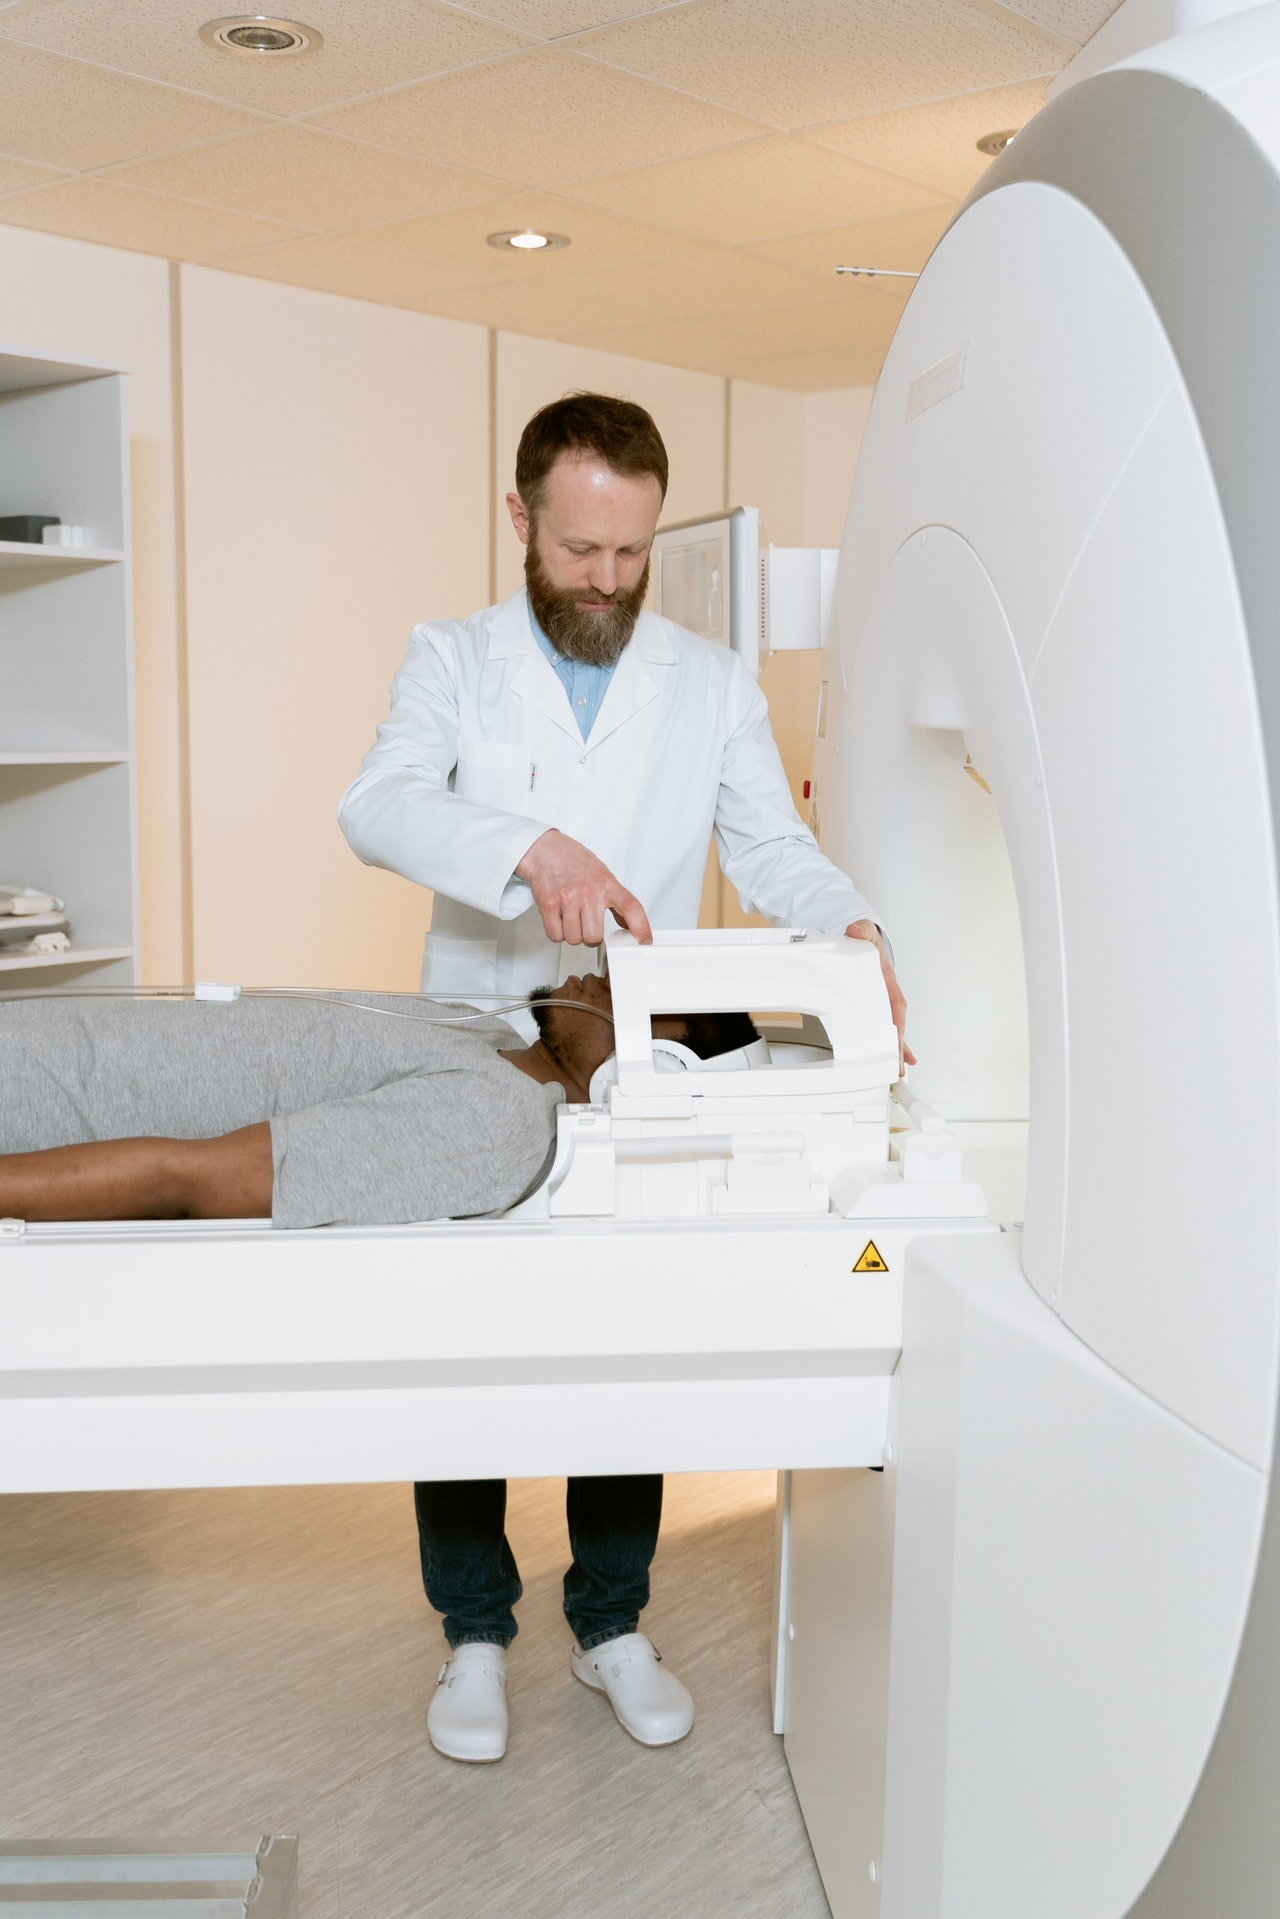 Advancements Radiology Guide Article Image